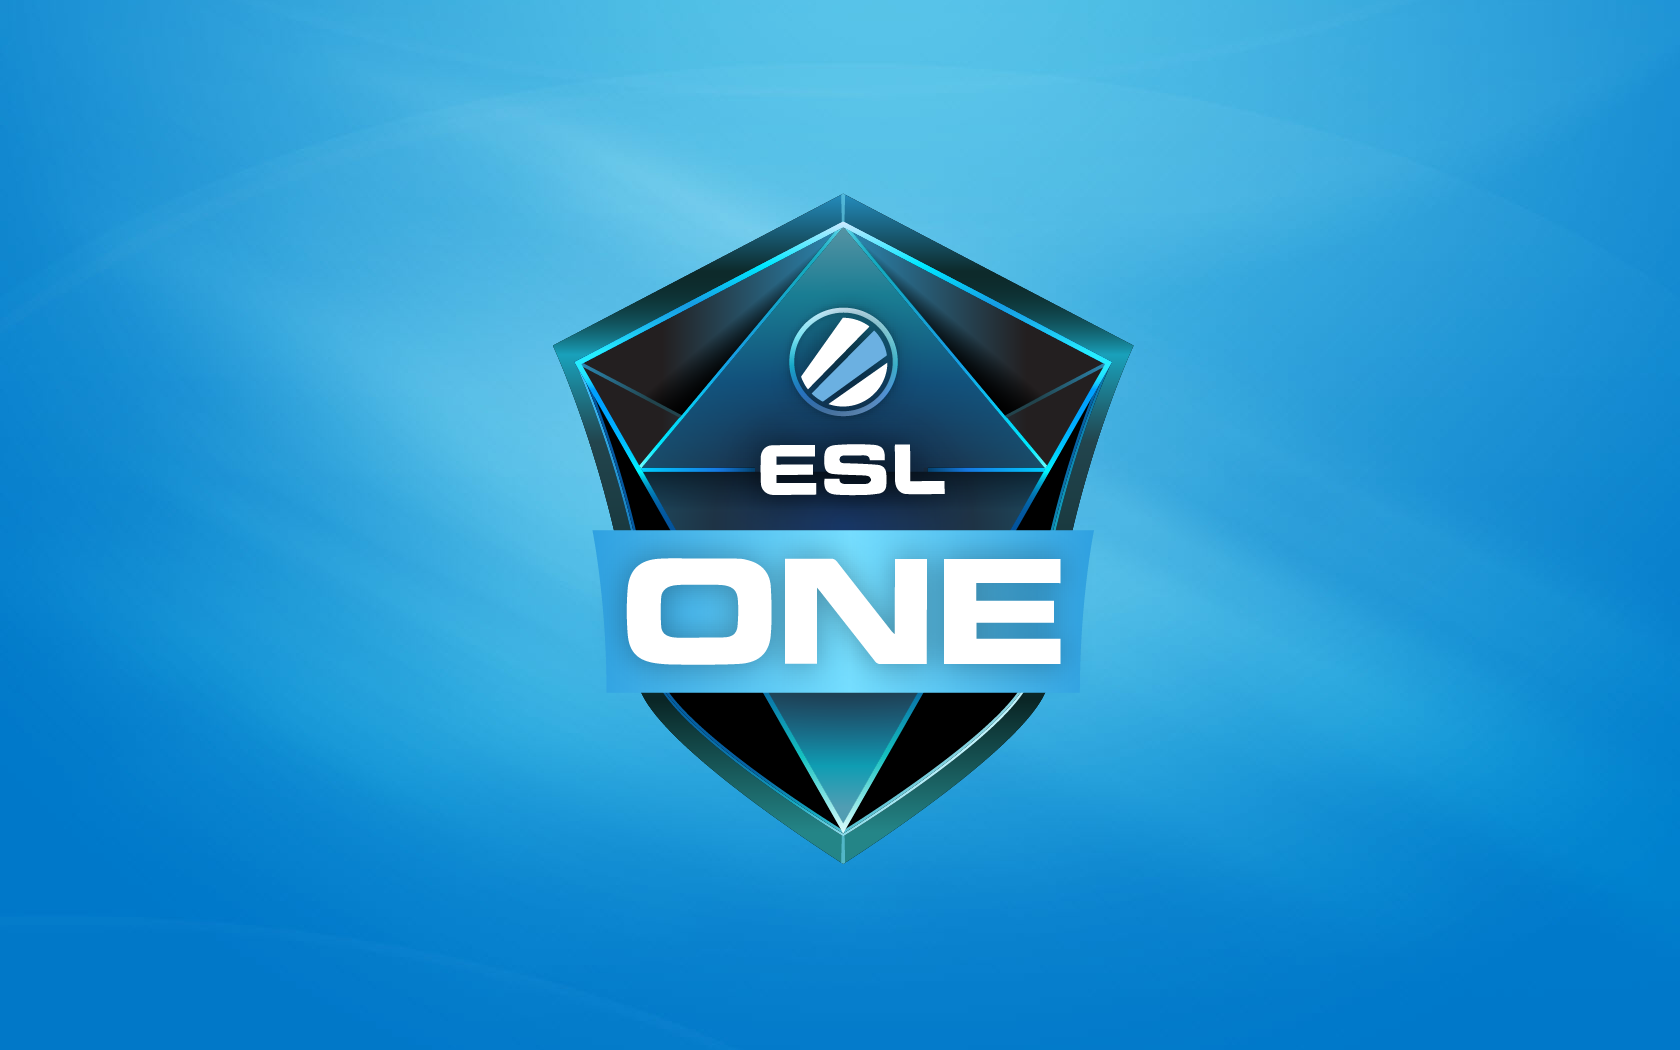 ESL One Light Blue